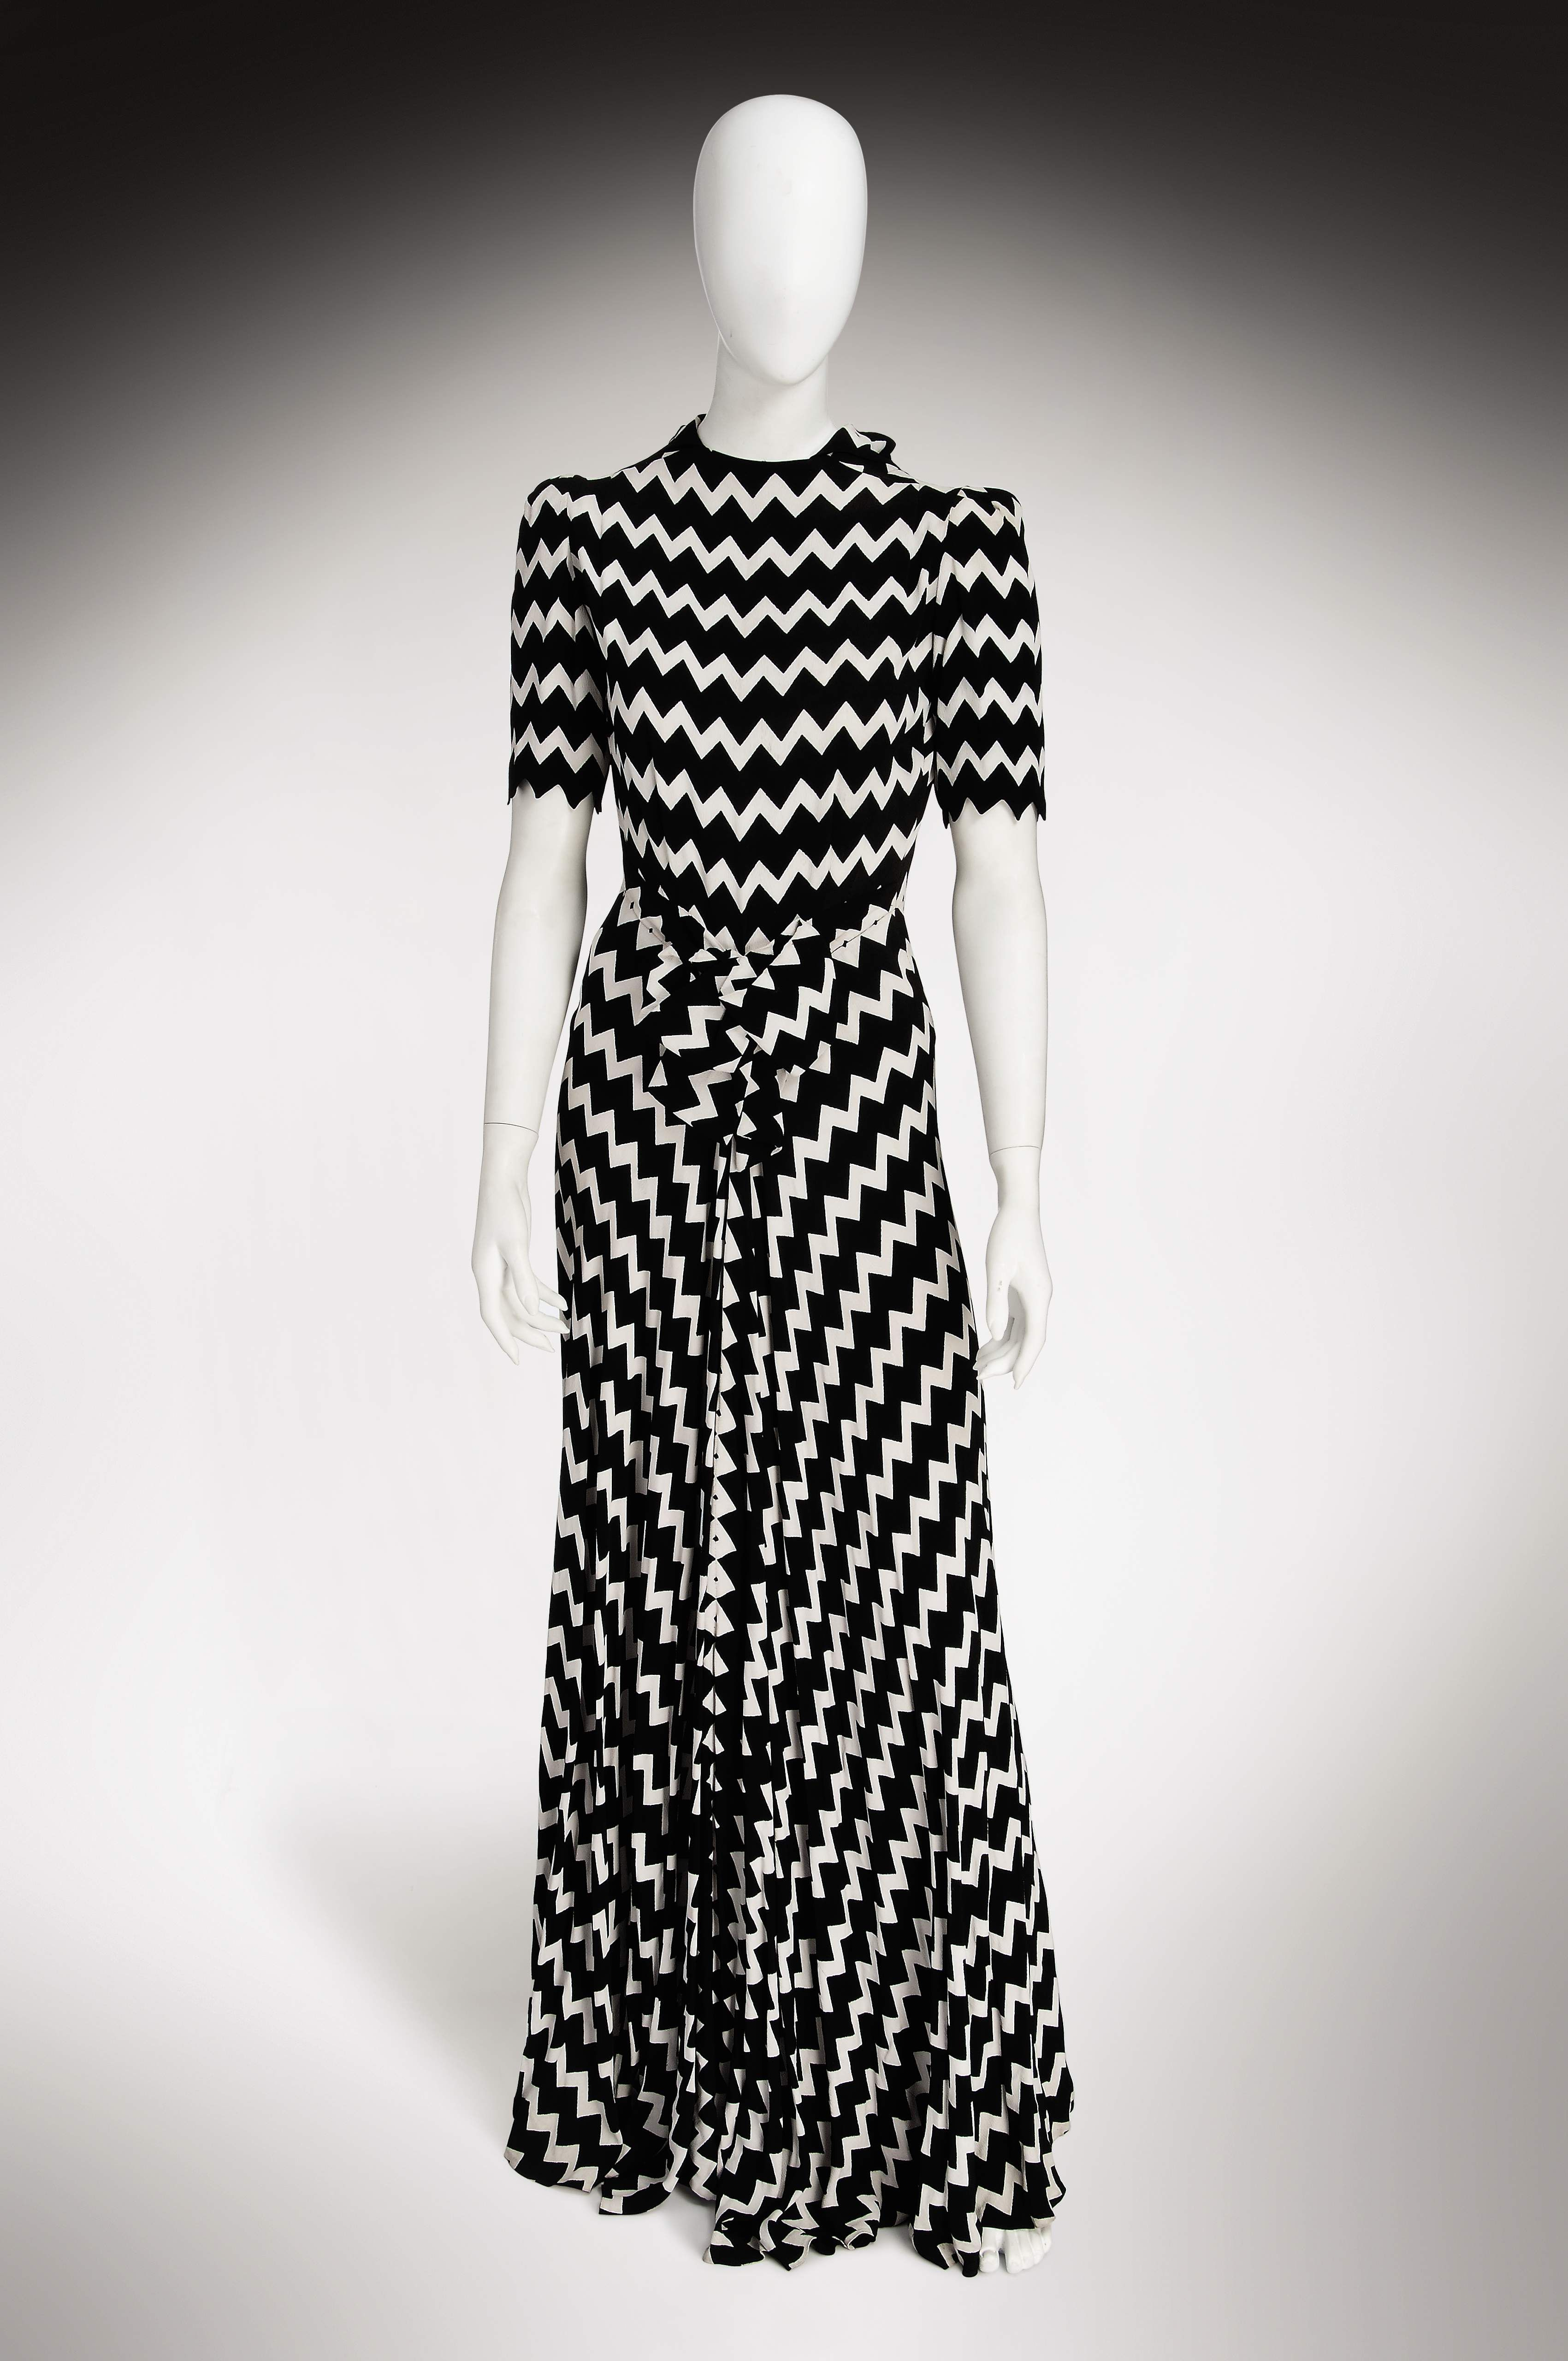 1930s Lanvin dress. #Modest doesn't mean frumpy. #DressingWithDignity www.ColleenHammond.com www.TotalimageInstitute.com